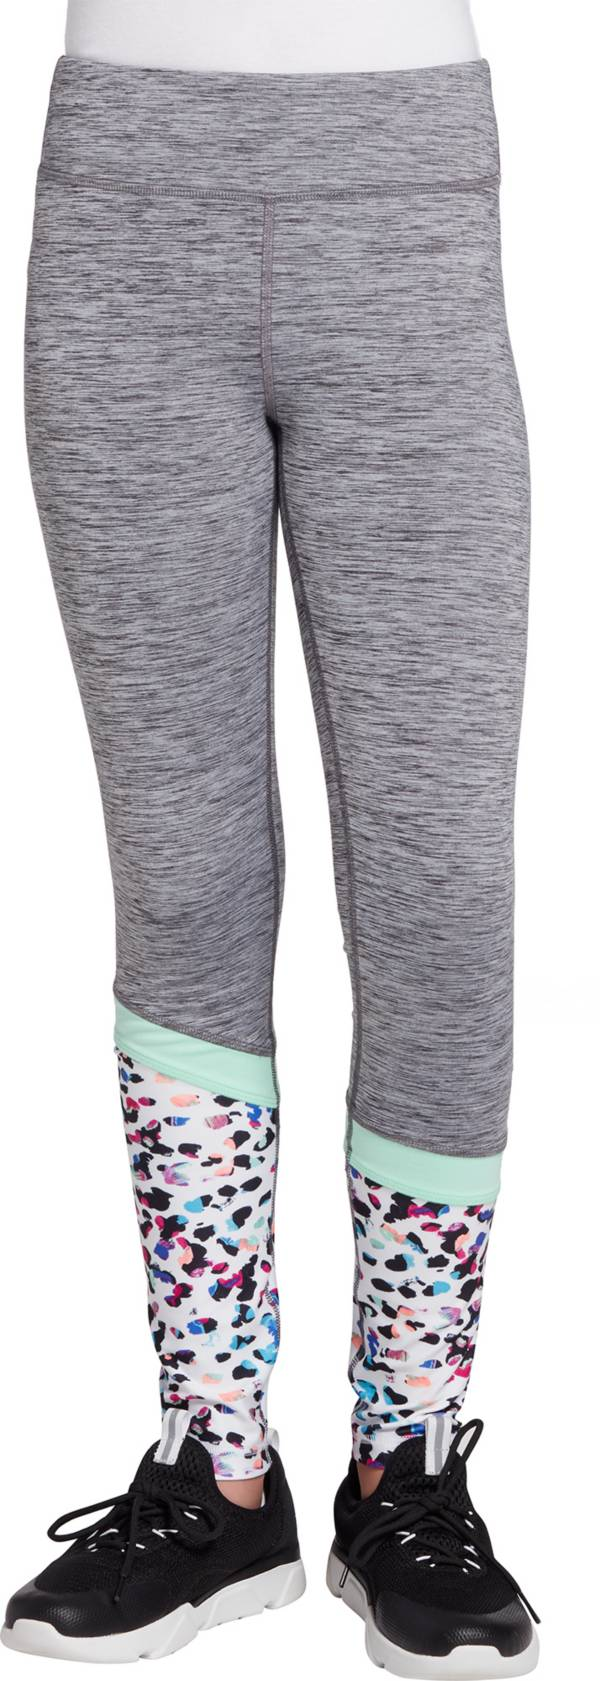 DSG Girls' Color Blocked Tights product image